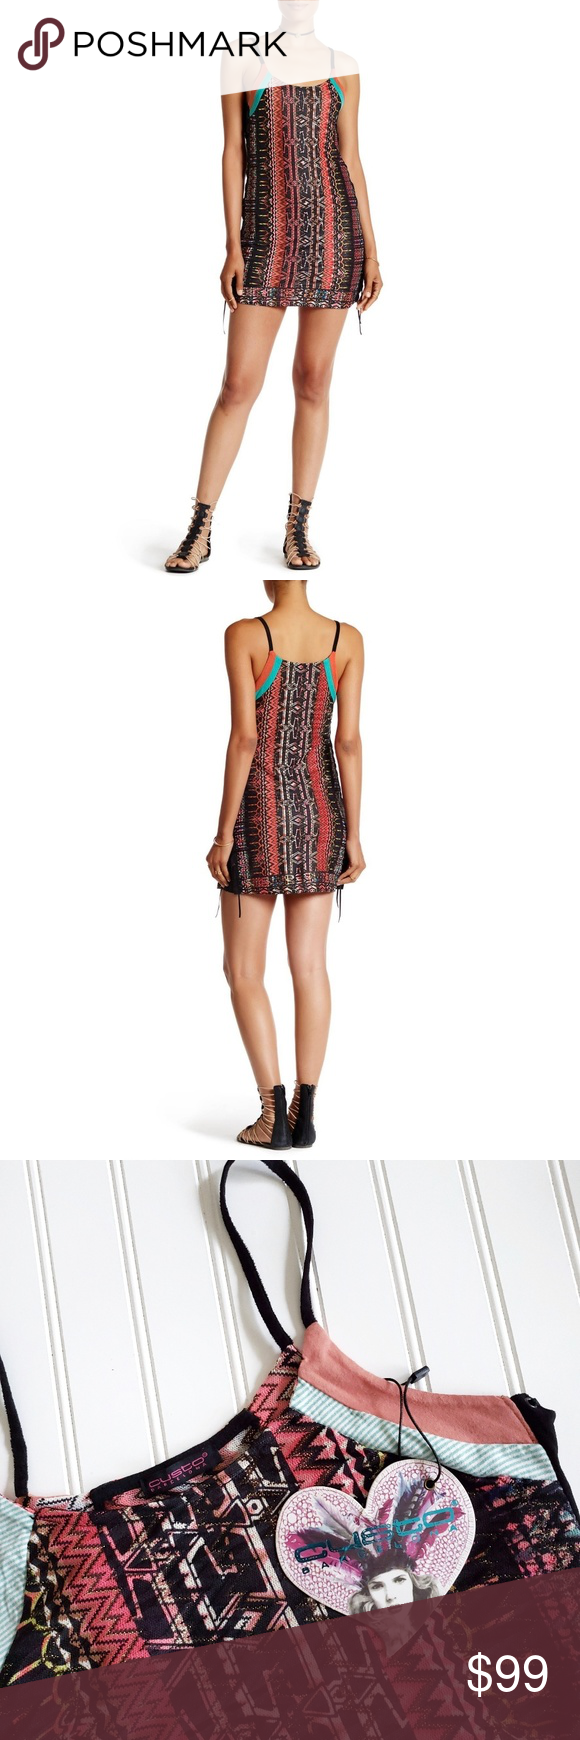 CUSTO BARCELONA Sassy Hahei laceup boho mini dress Custo Barcelona fitted boho mini dress  New with tag Style: Sassy Hahei Size: Small Color: multi Polyester / Cotton slips on overhead scoop neck spaghetti straps sheer patterned knit construction metallic accents side lace-up detail which can be tightened or loosened  Approximate Measurements Length (top of strap to hem) 32  Bust 14.5  Waist 14 Hips 17 Custo Barcelona Dresses Mini #custobarcelona CUSTO BARCELONA Sassy Hahei laceup boho mini #custobarcelona